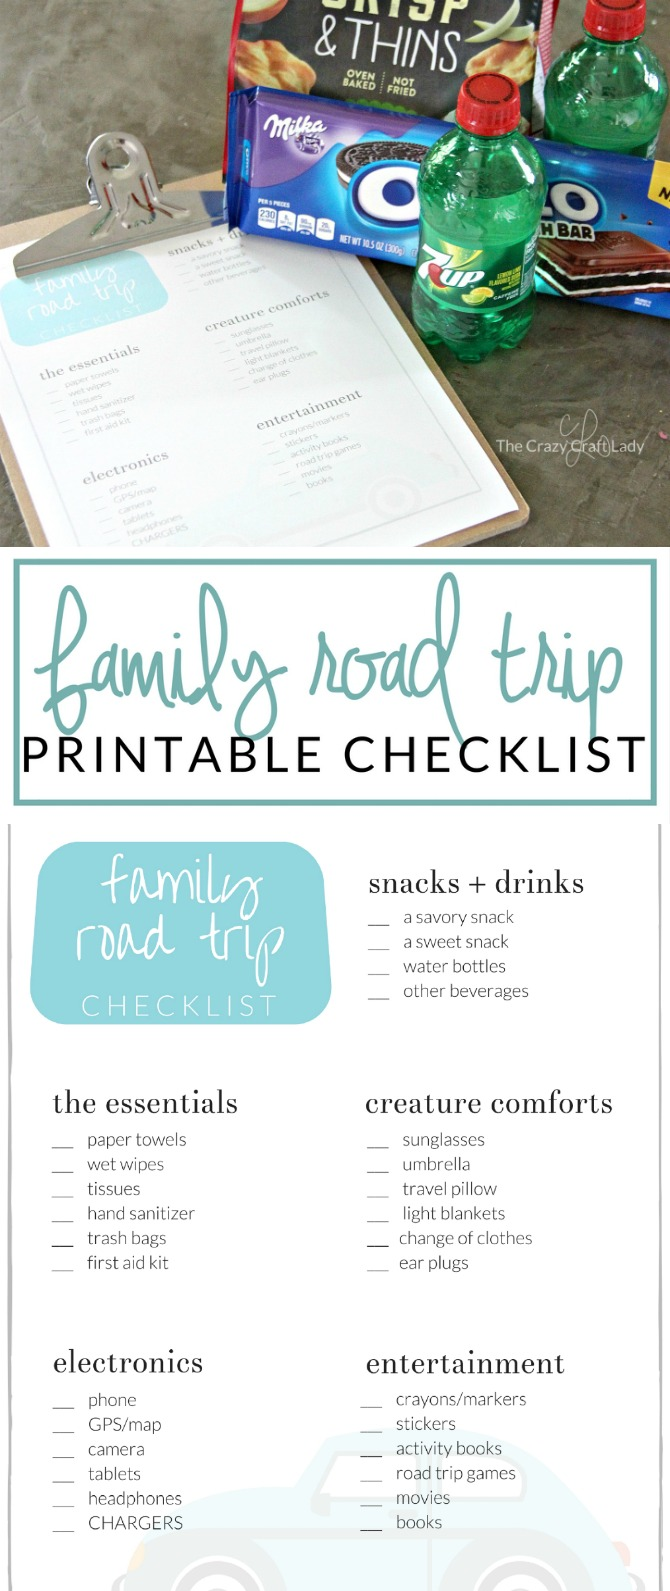 Taking a road trip with the family? Download and print this road trip checklist, so you're fully prepared and ready for anything on your next family vacation. Tips for what to pack in the car and a FREE printable.